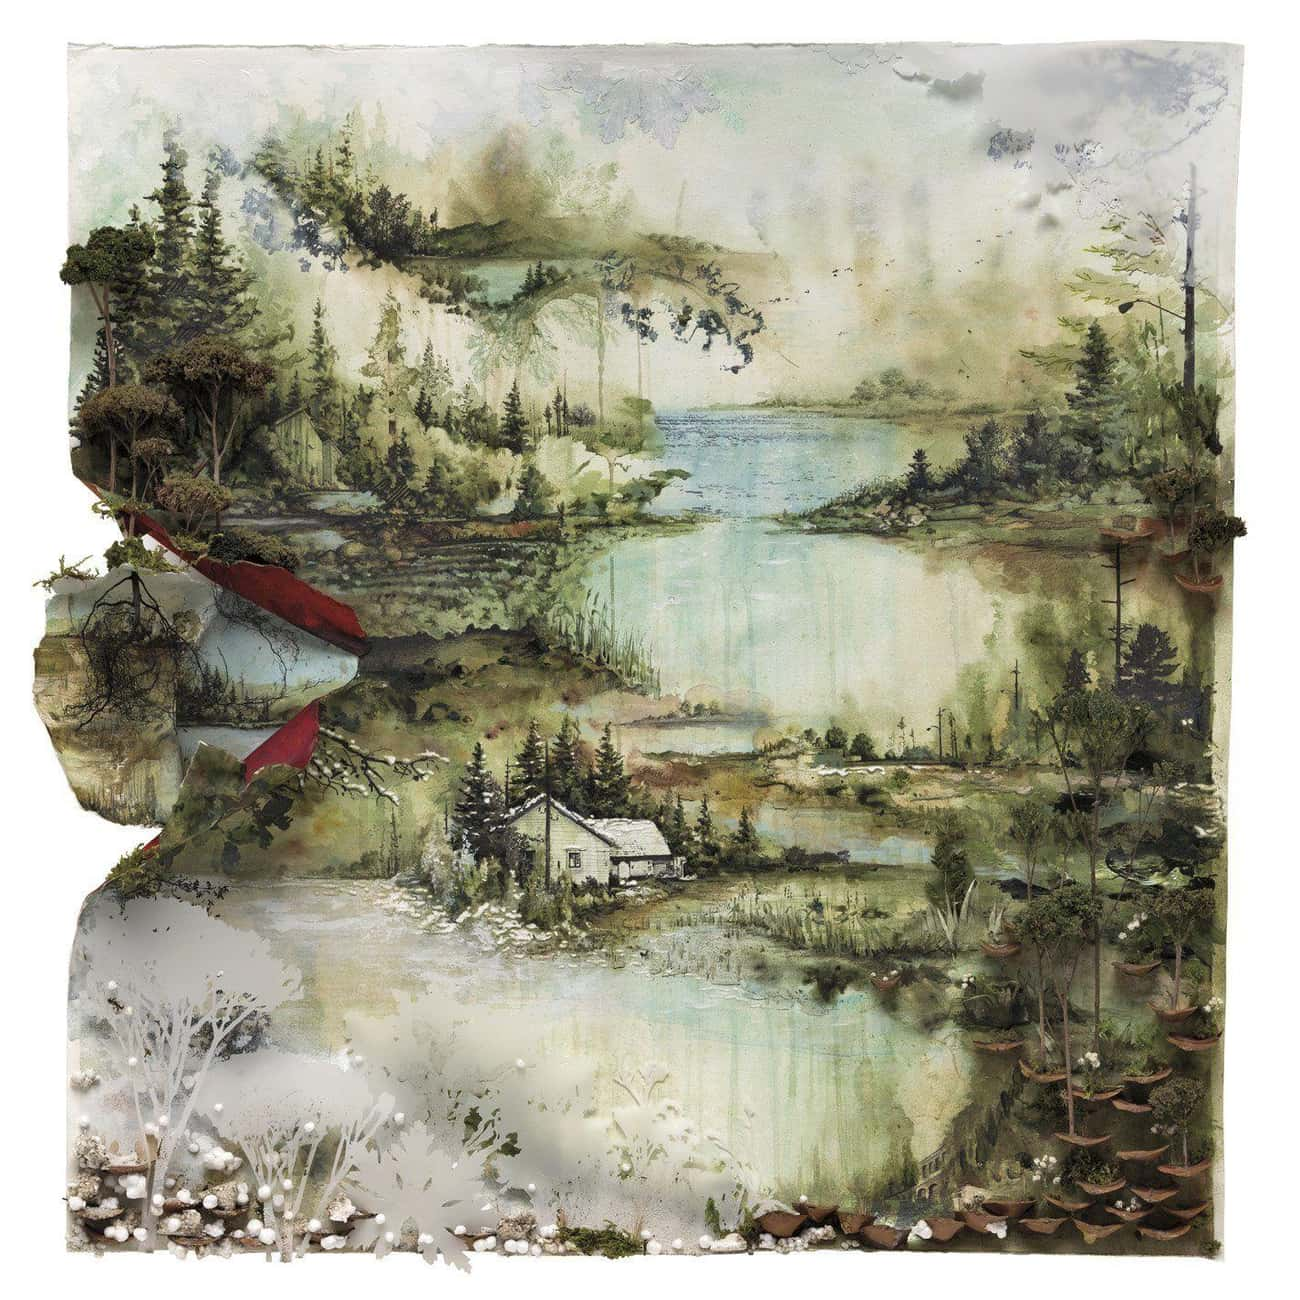 Bon Iver is listed (or ranked) 1 on the list The Best Bon Iver Albums, Ranked